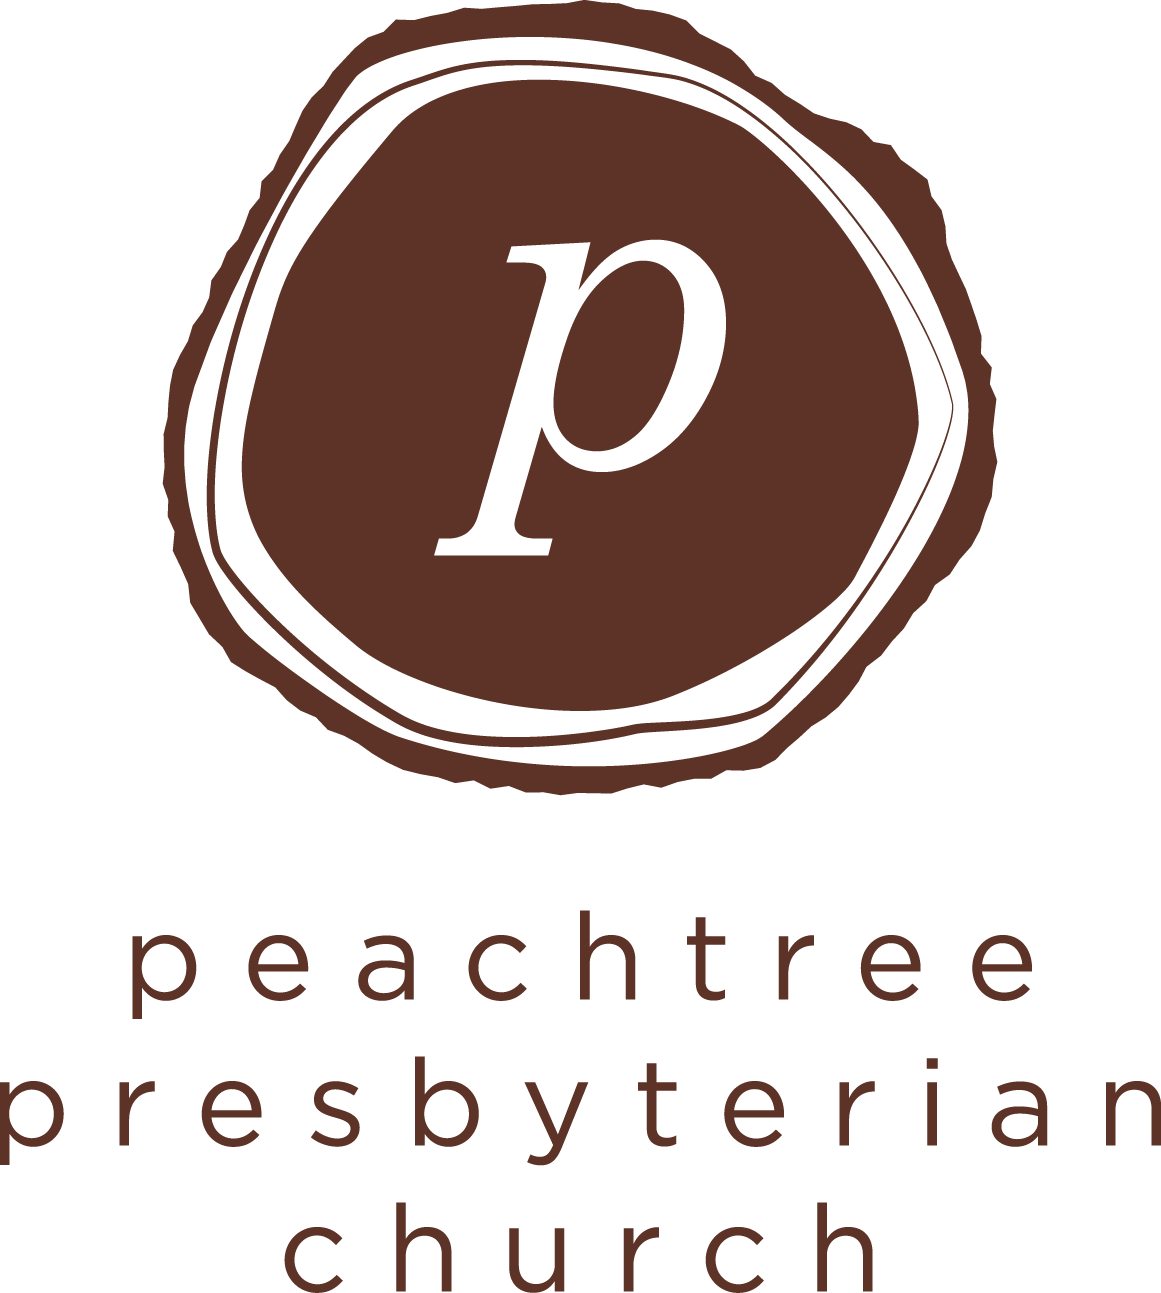 Peachtree Presbyterian Church Creative & Communications Director